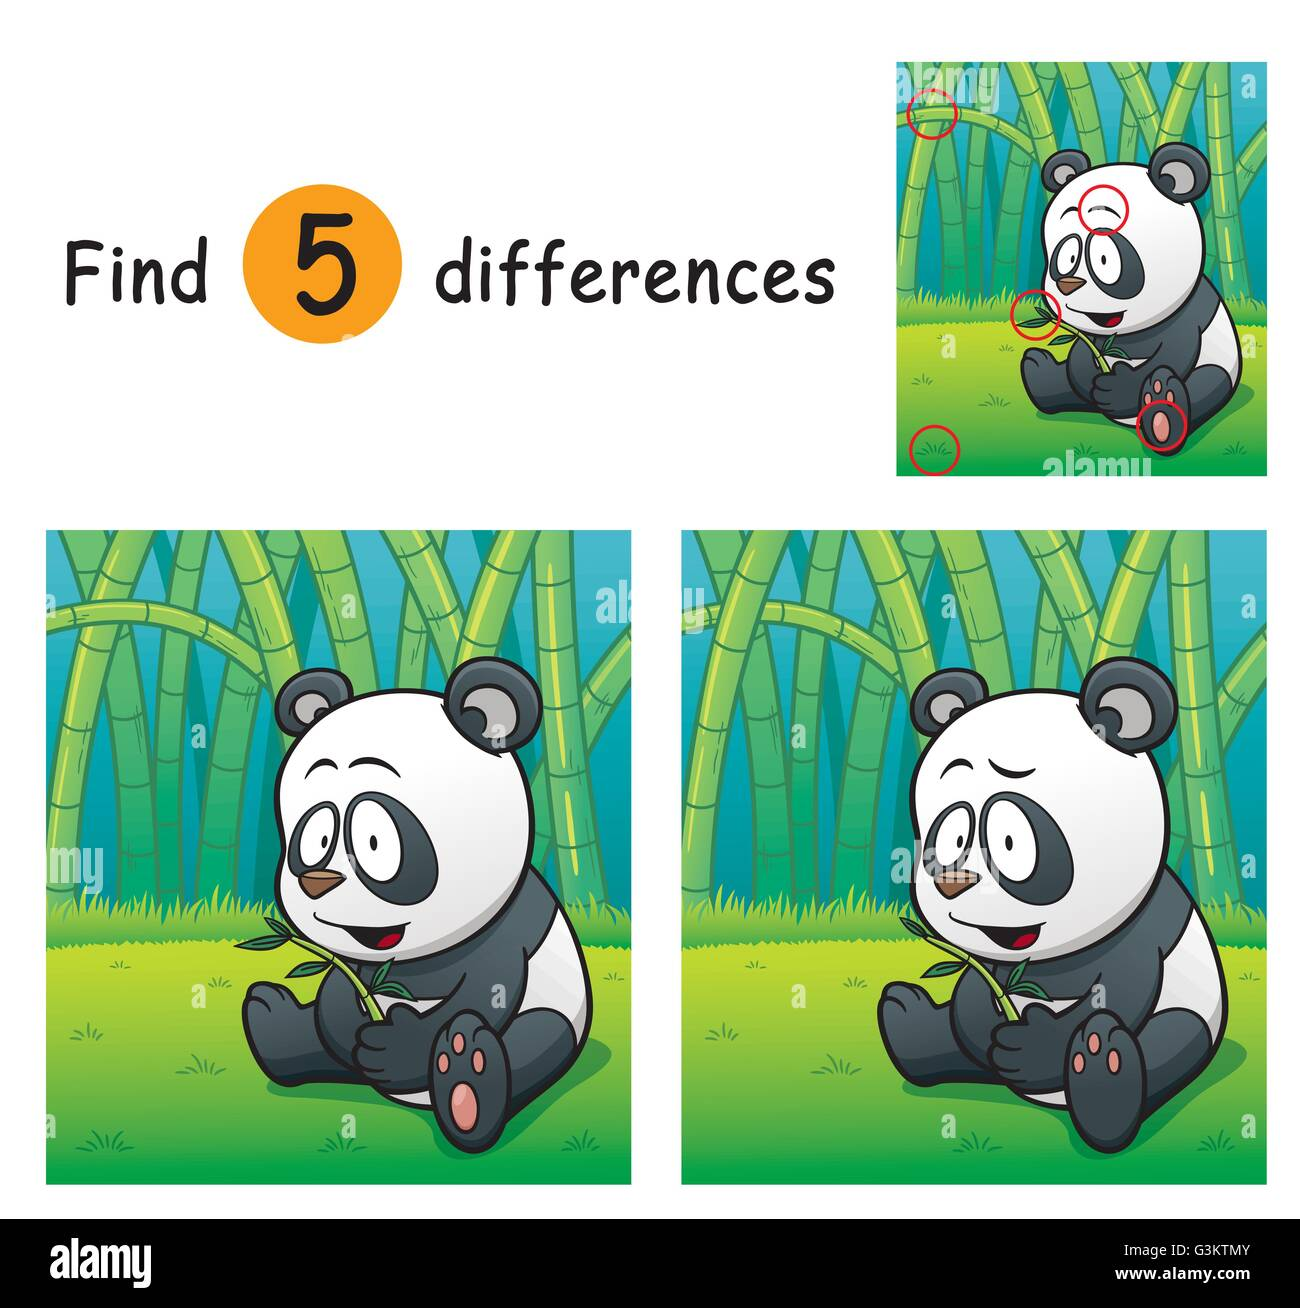 Vector Illustration of Game for children find differences - Panda - Stock Vector